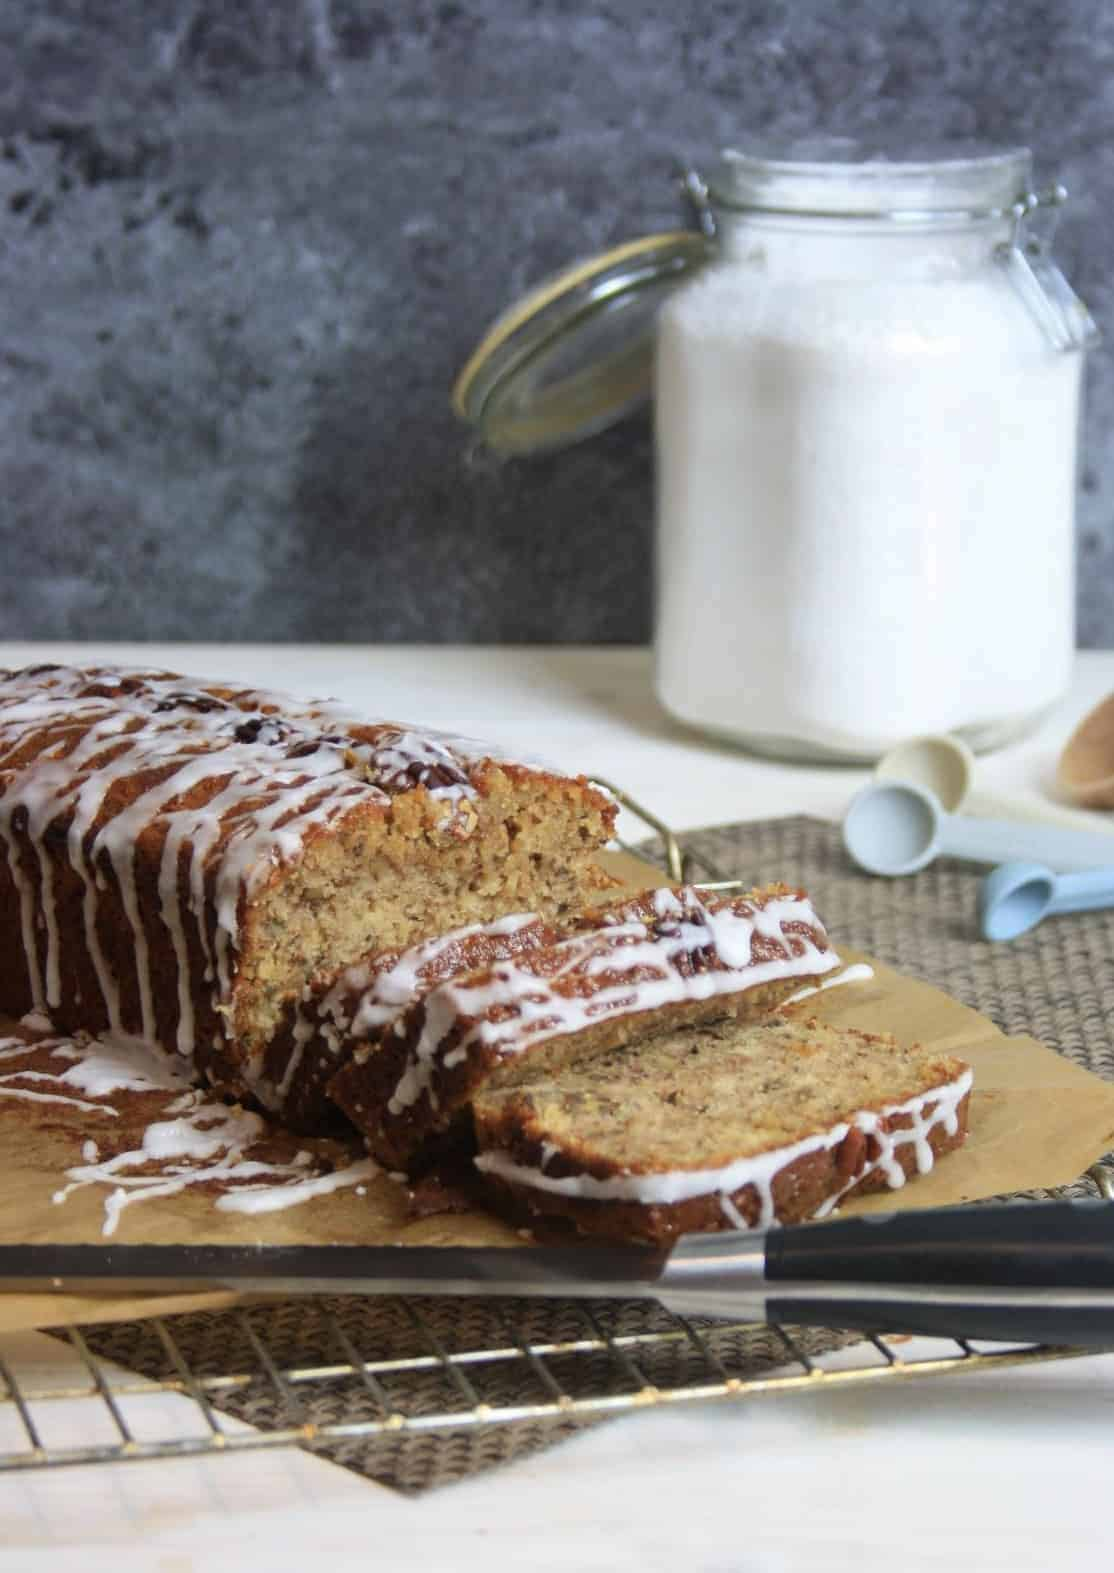 banana cake with slices cut